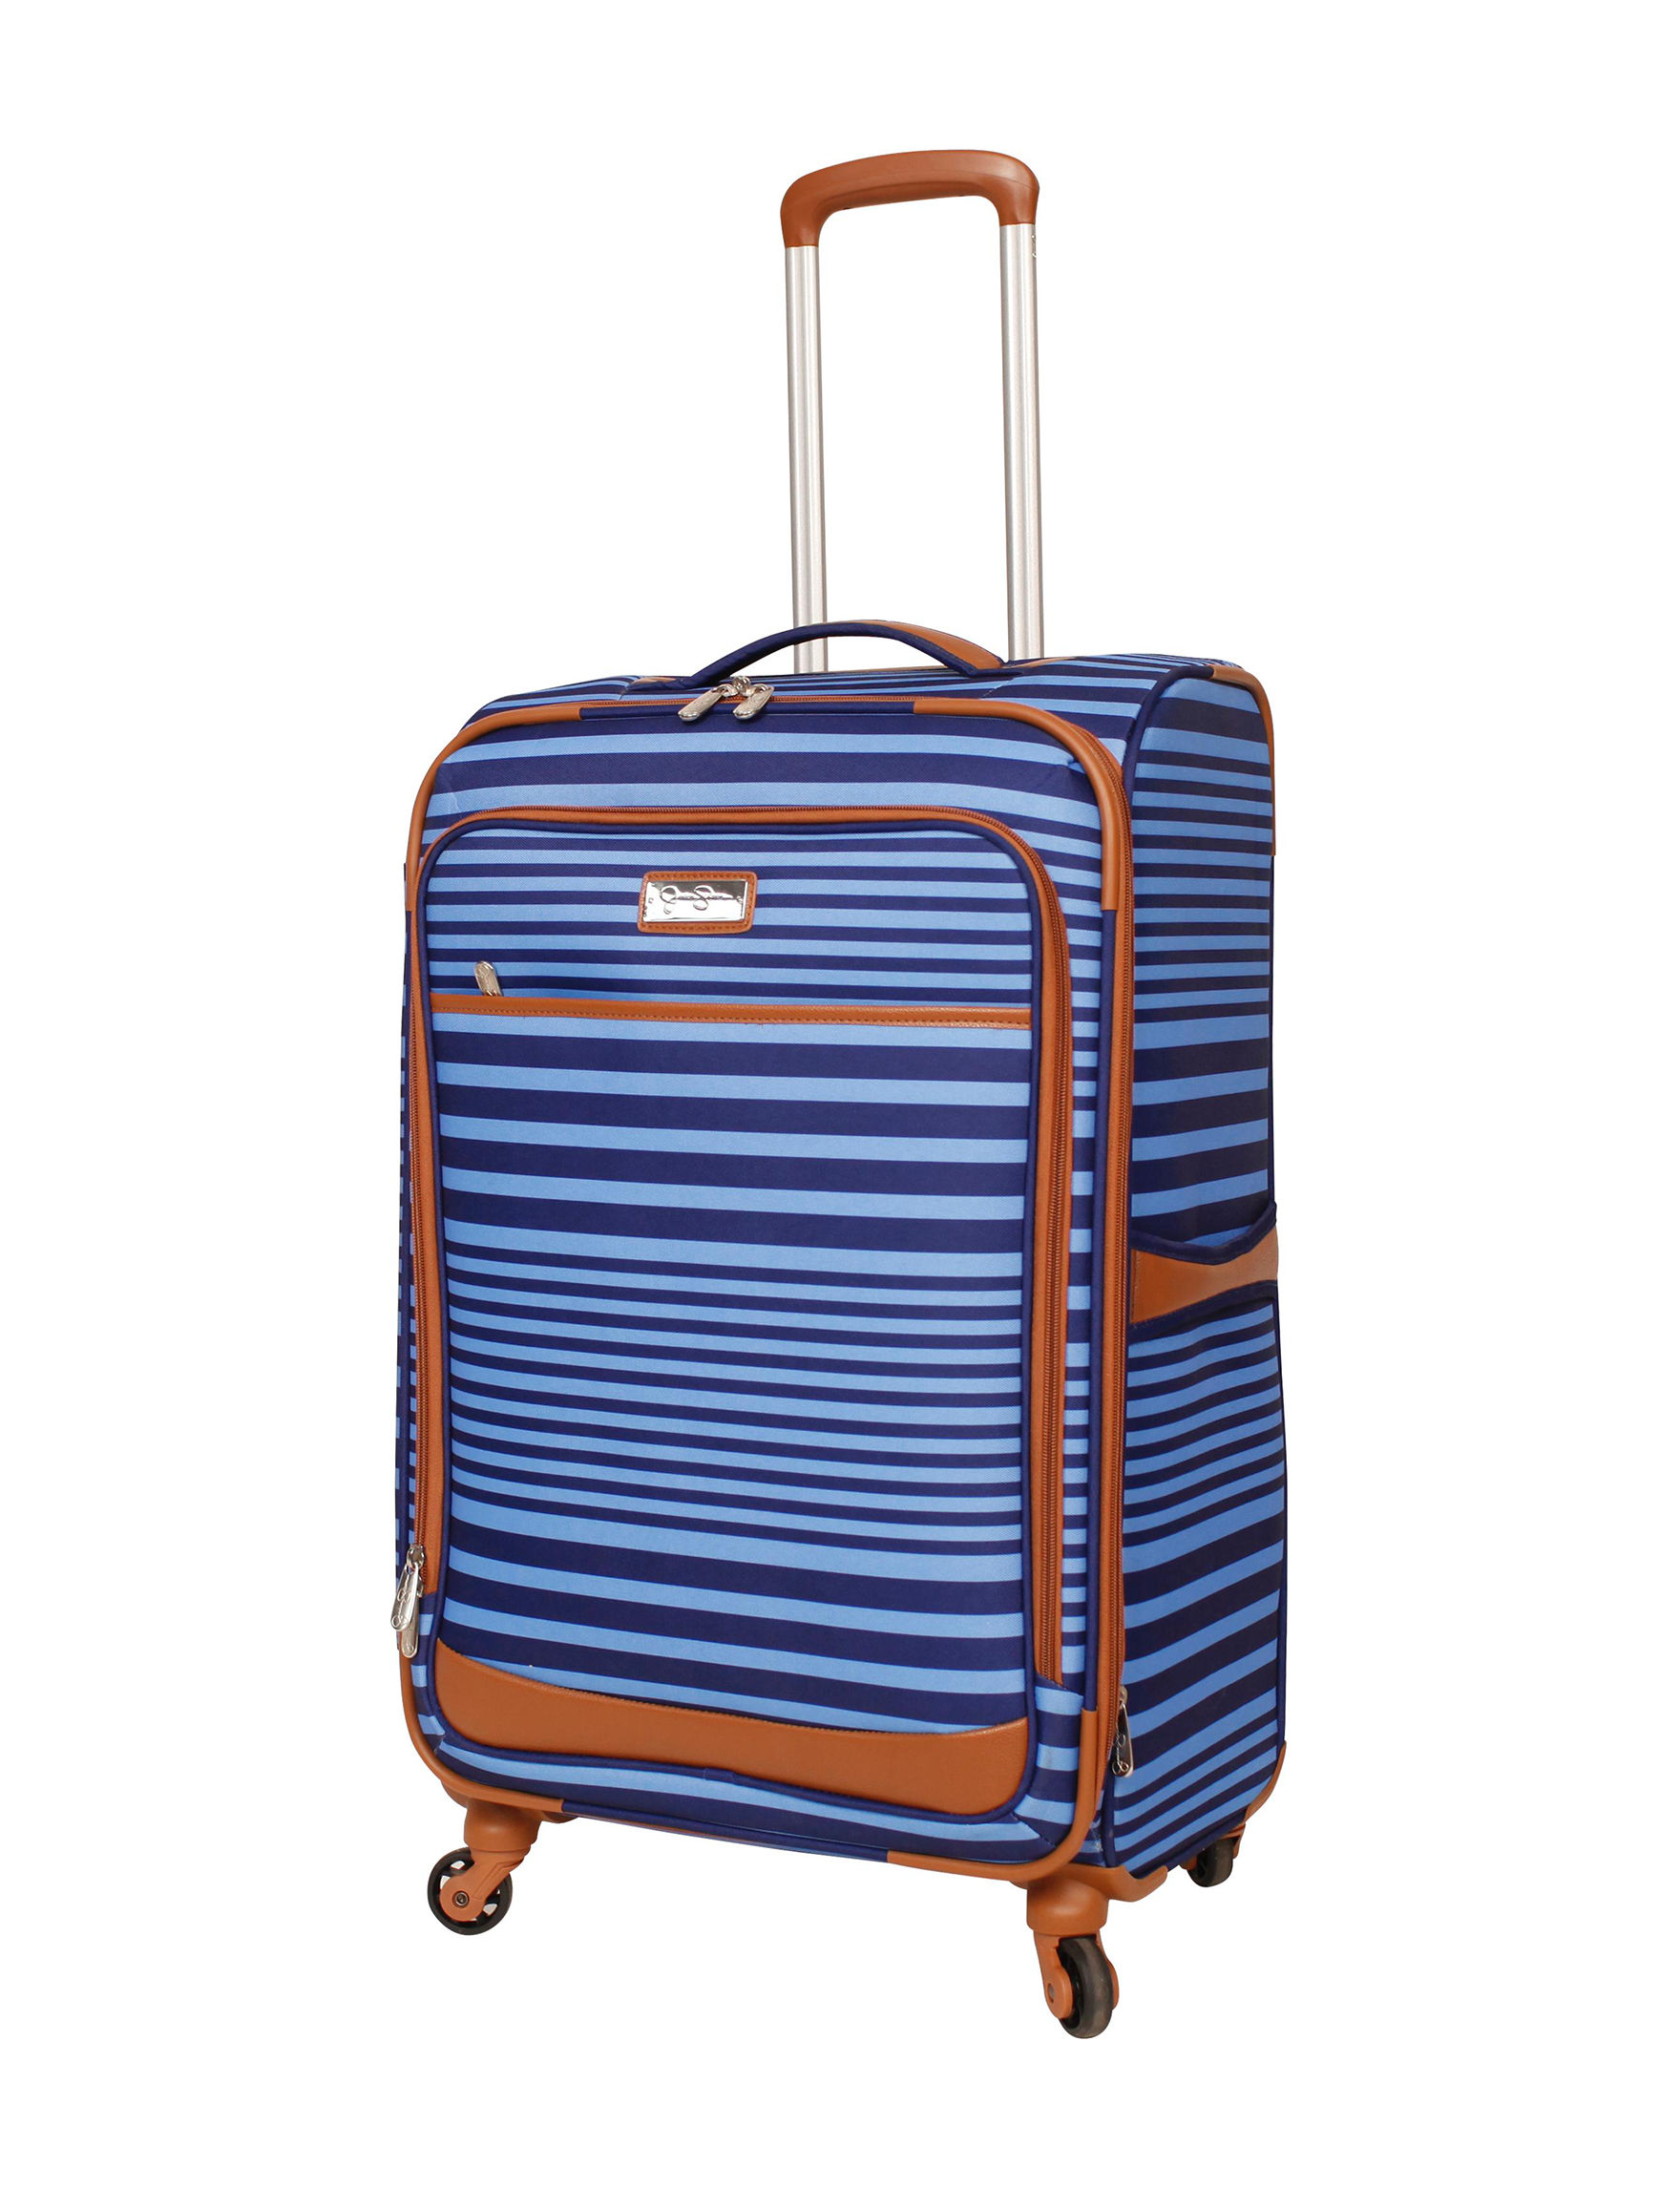 Jessica Simpson Blue Upright Spinners